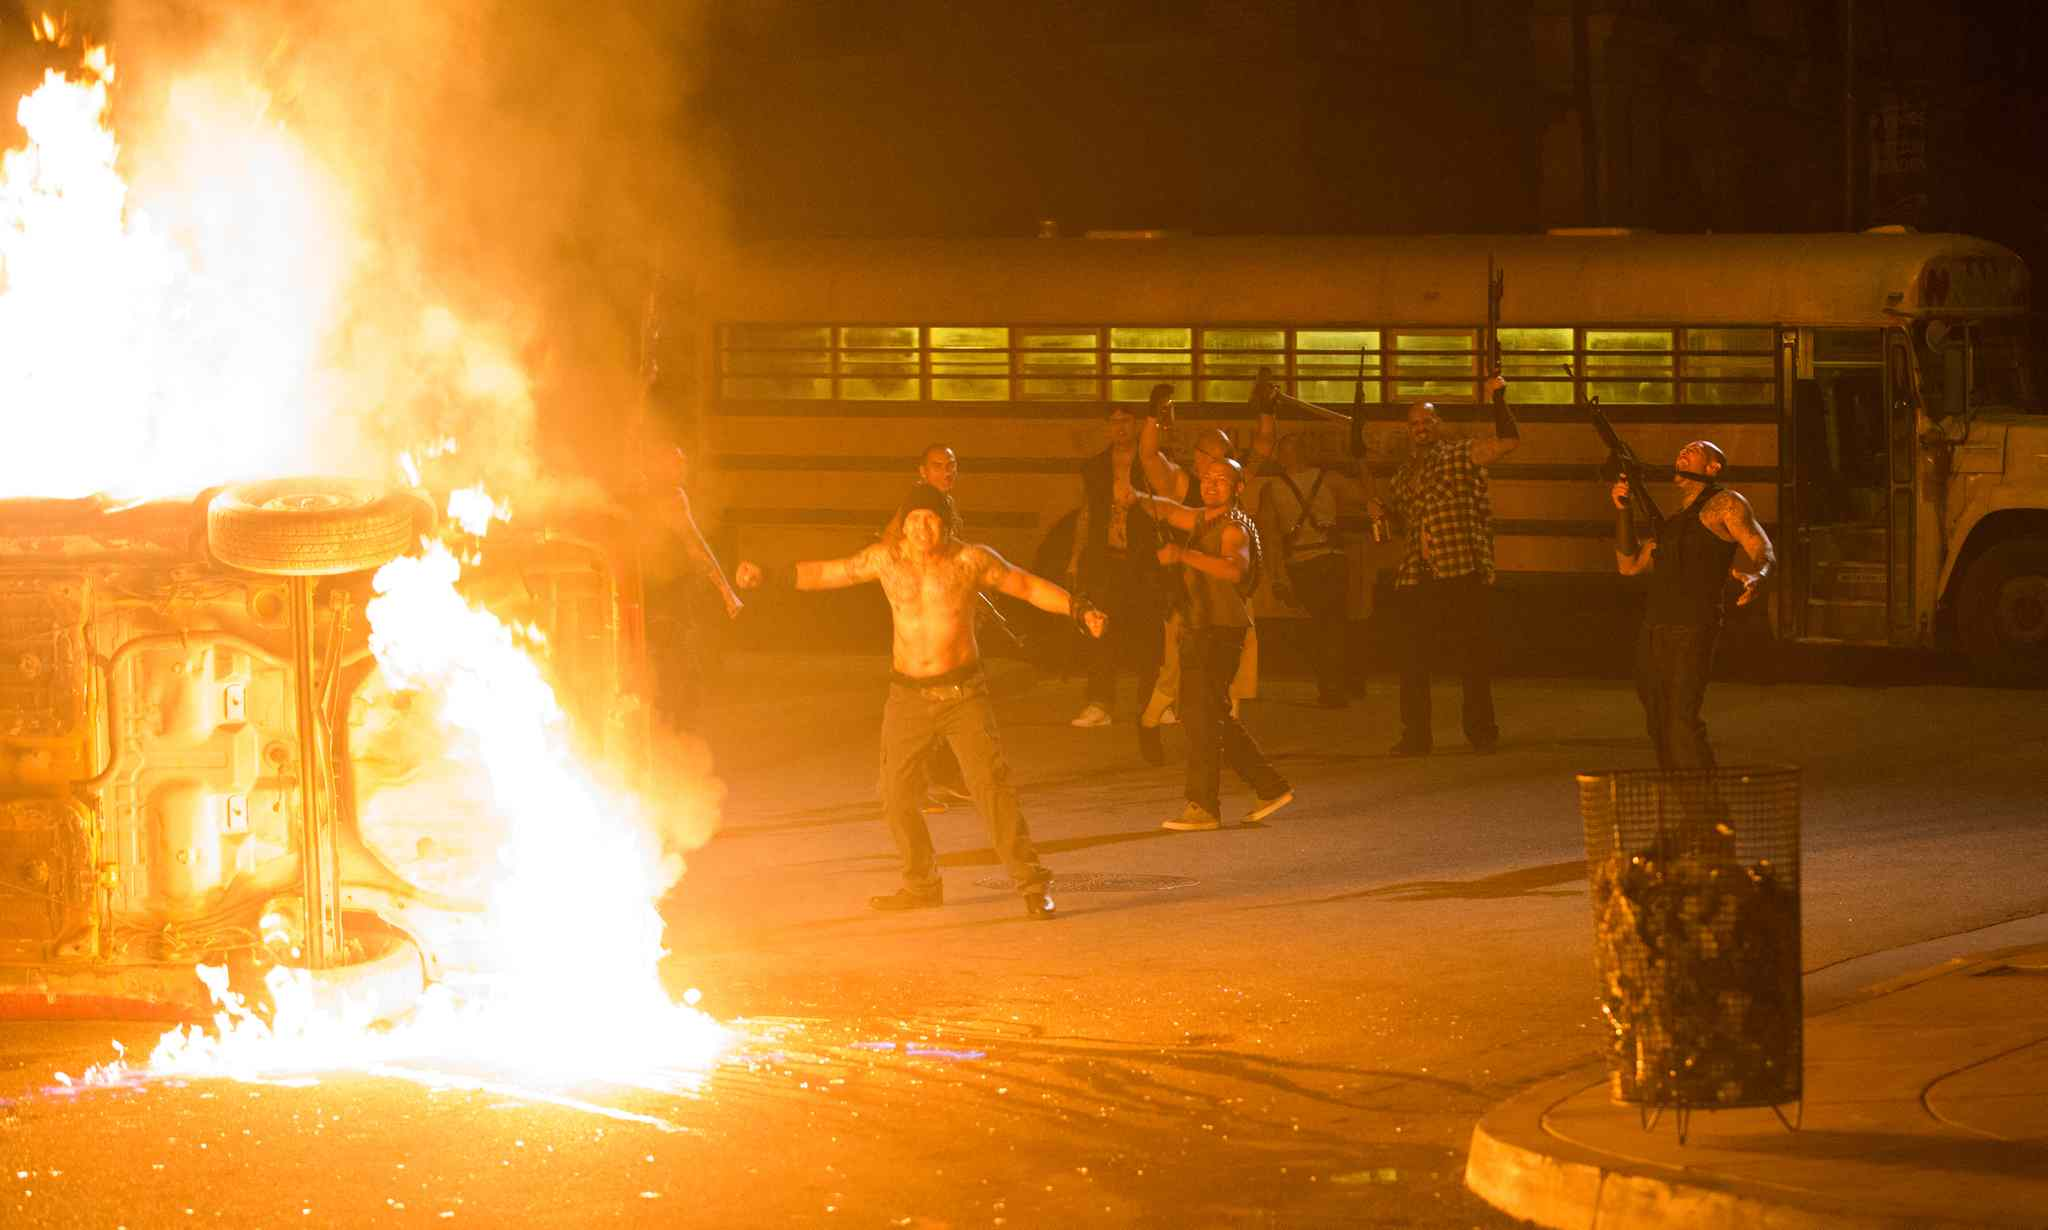 Violence still rules in sequel to The Purge, but original's message has been purged.